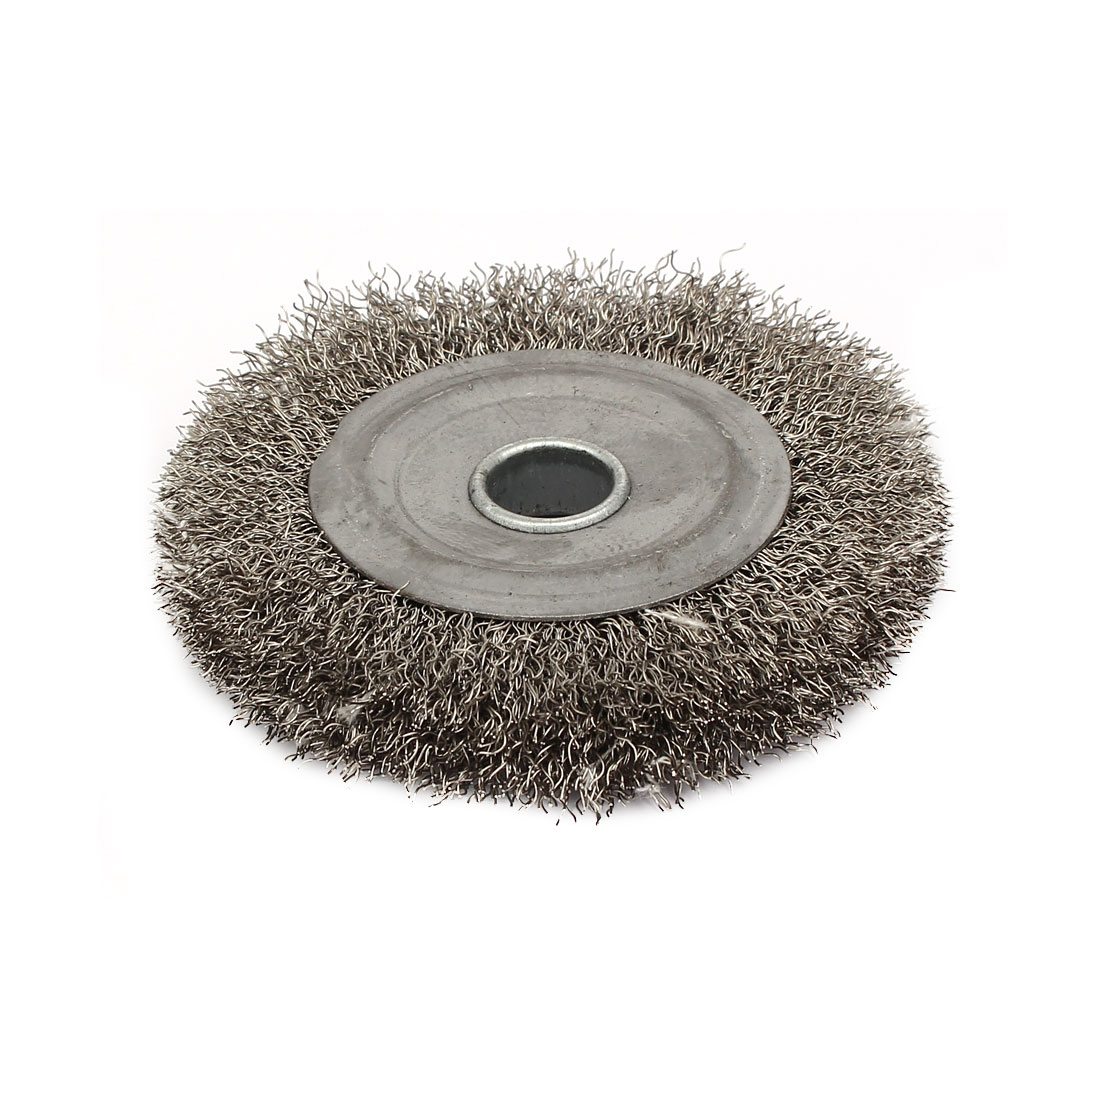 100mm Dia Stainless Steel Wire Polishing Brush Wheel Buffing Tool Silver Tone